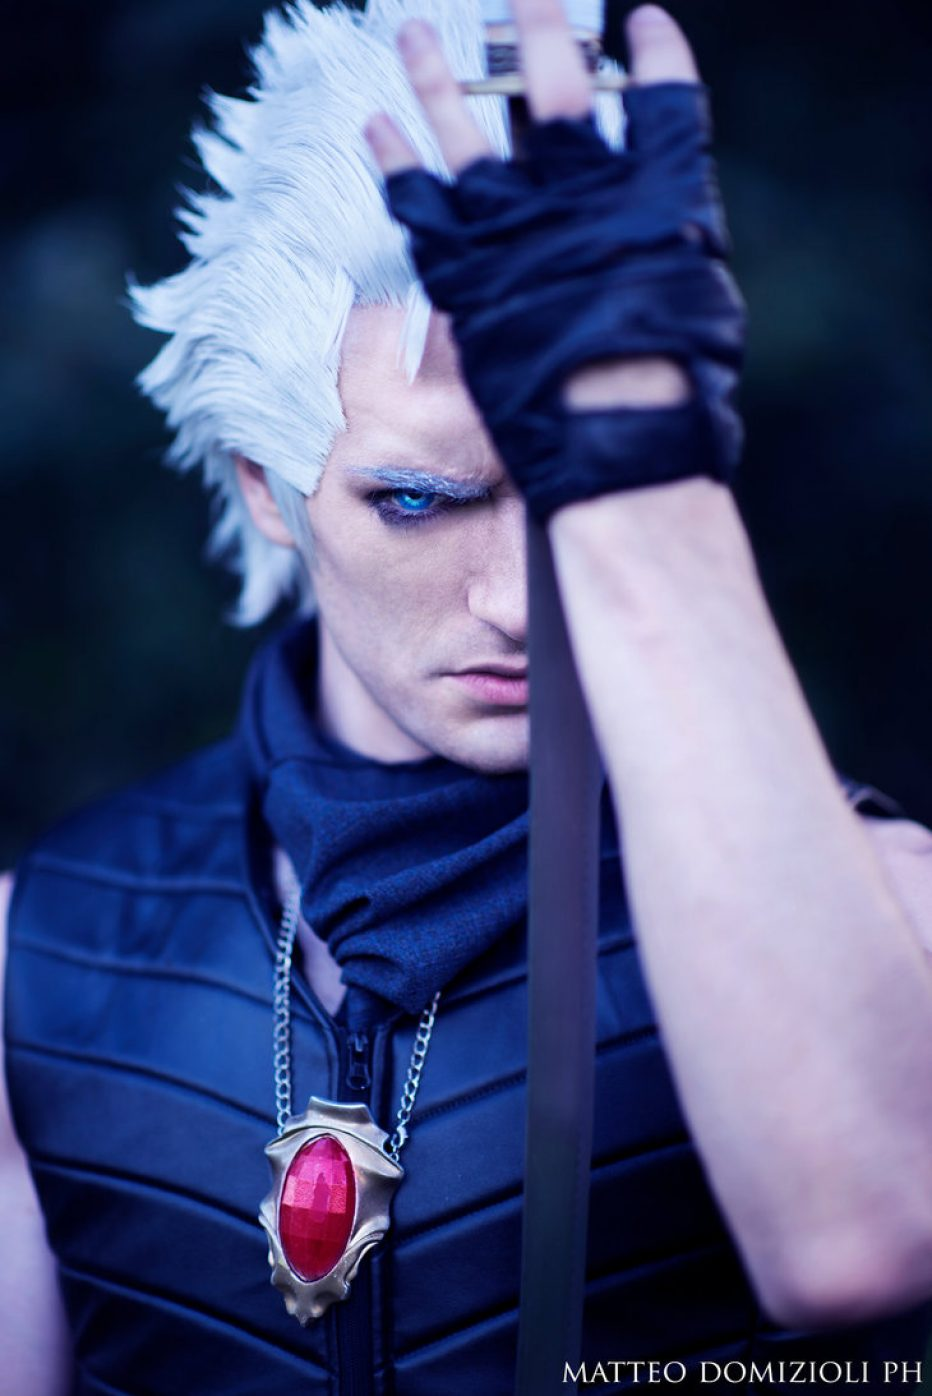 Devil-May-Cry-Vergil-Cosplay-Gamers-Heroes-5.jpg